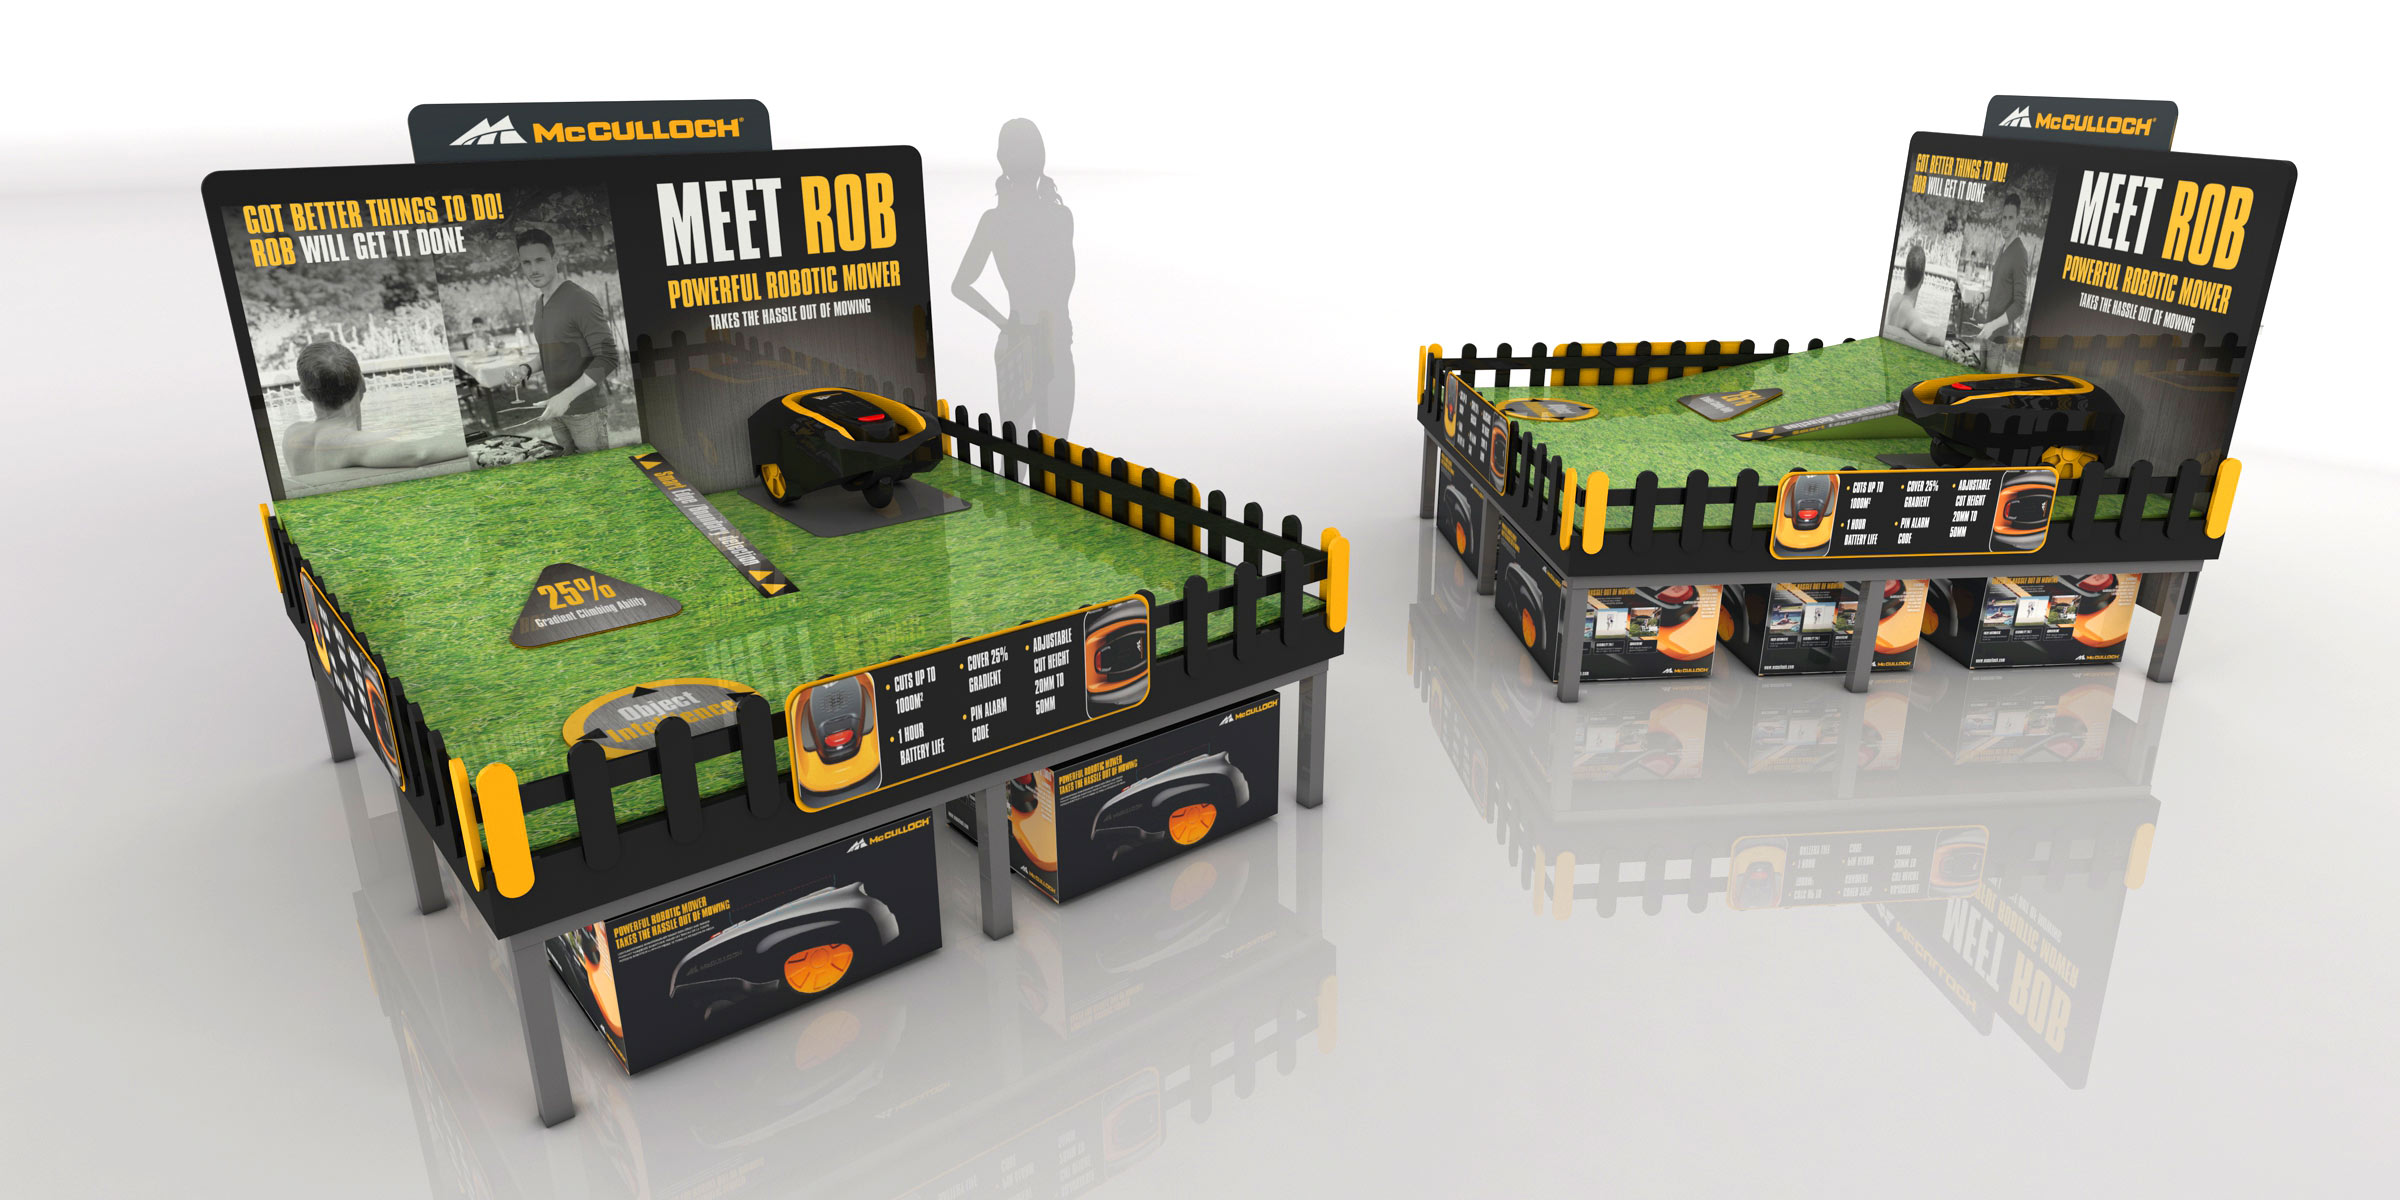 McCulloch robotic mower demo area